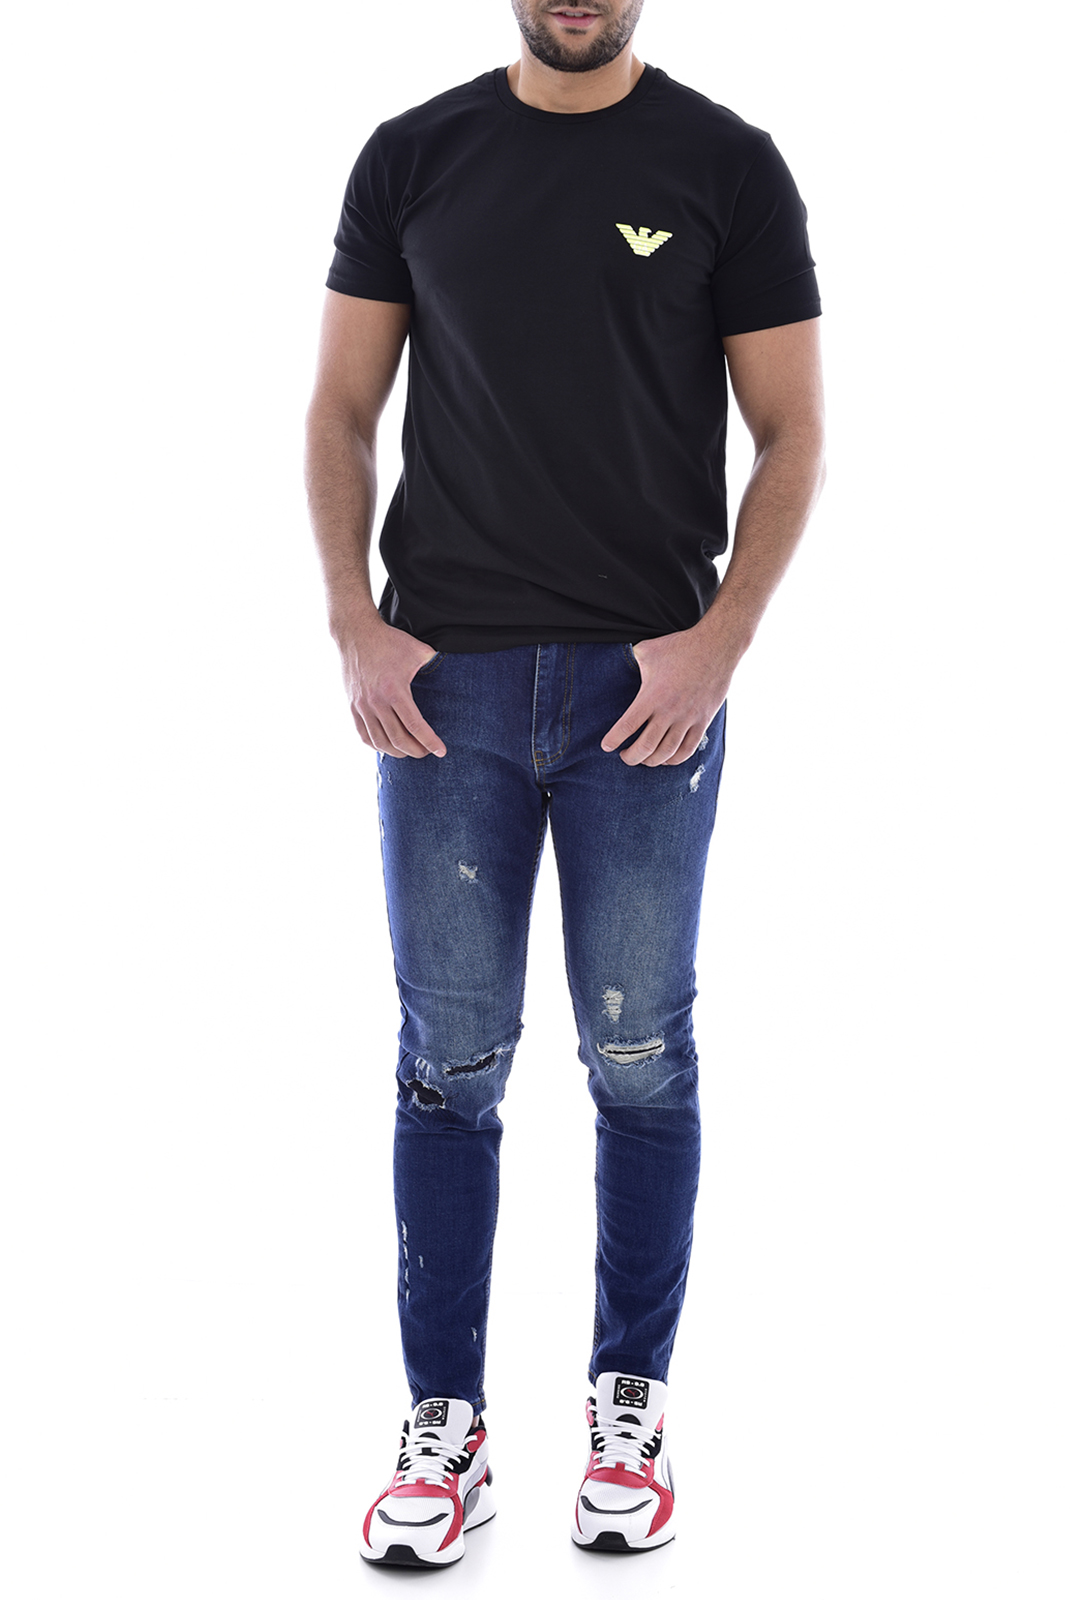 Jeans  Goldenim paris 1312 BLEU